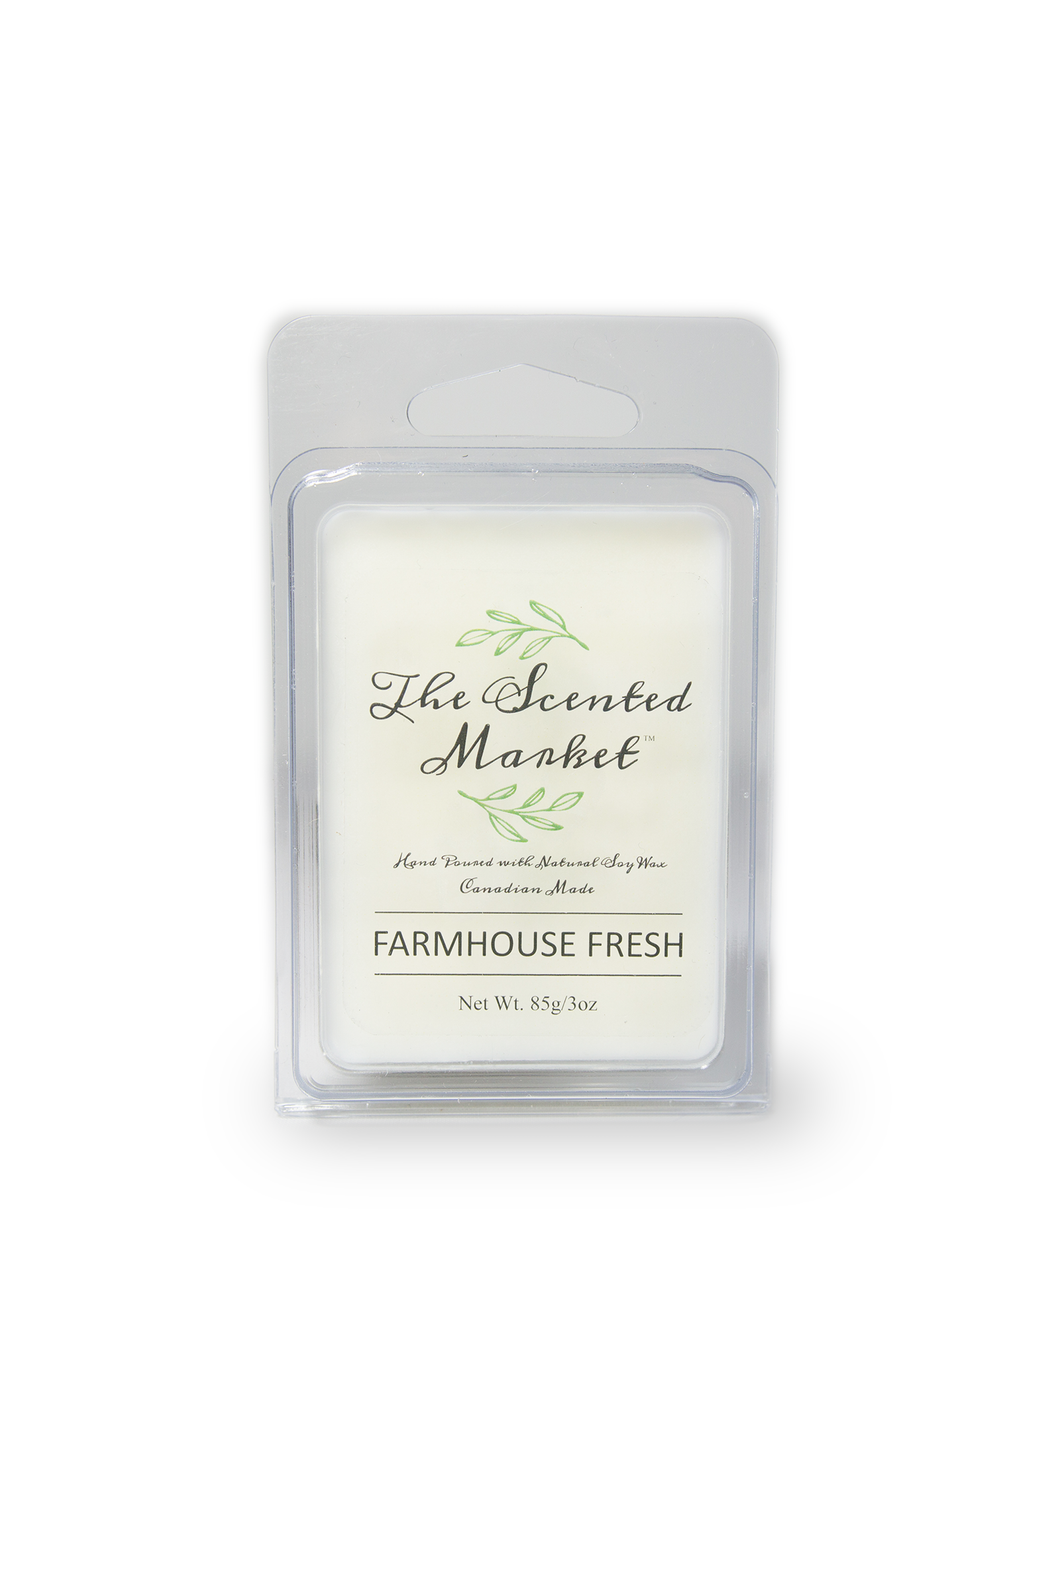 FARMHOUSE FRESH SOY WAX MELT